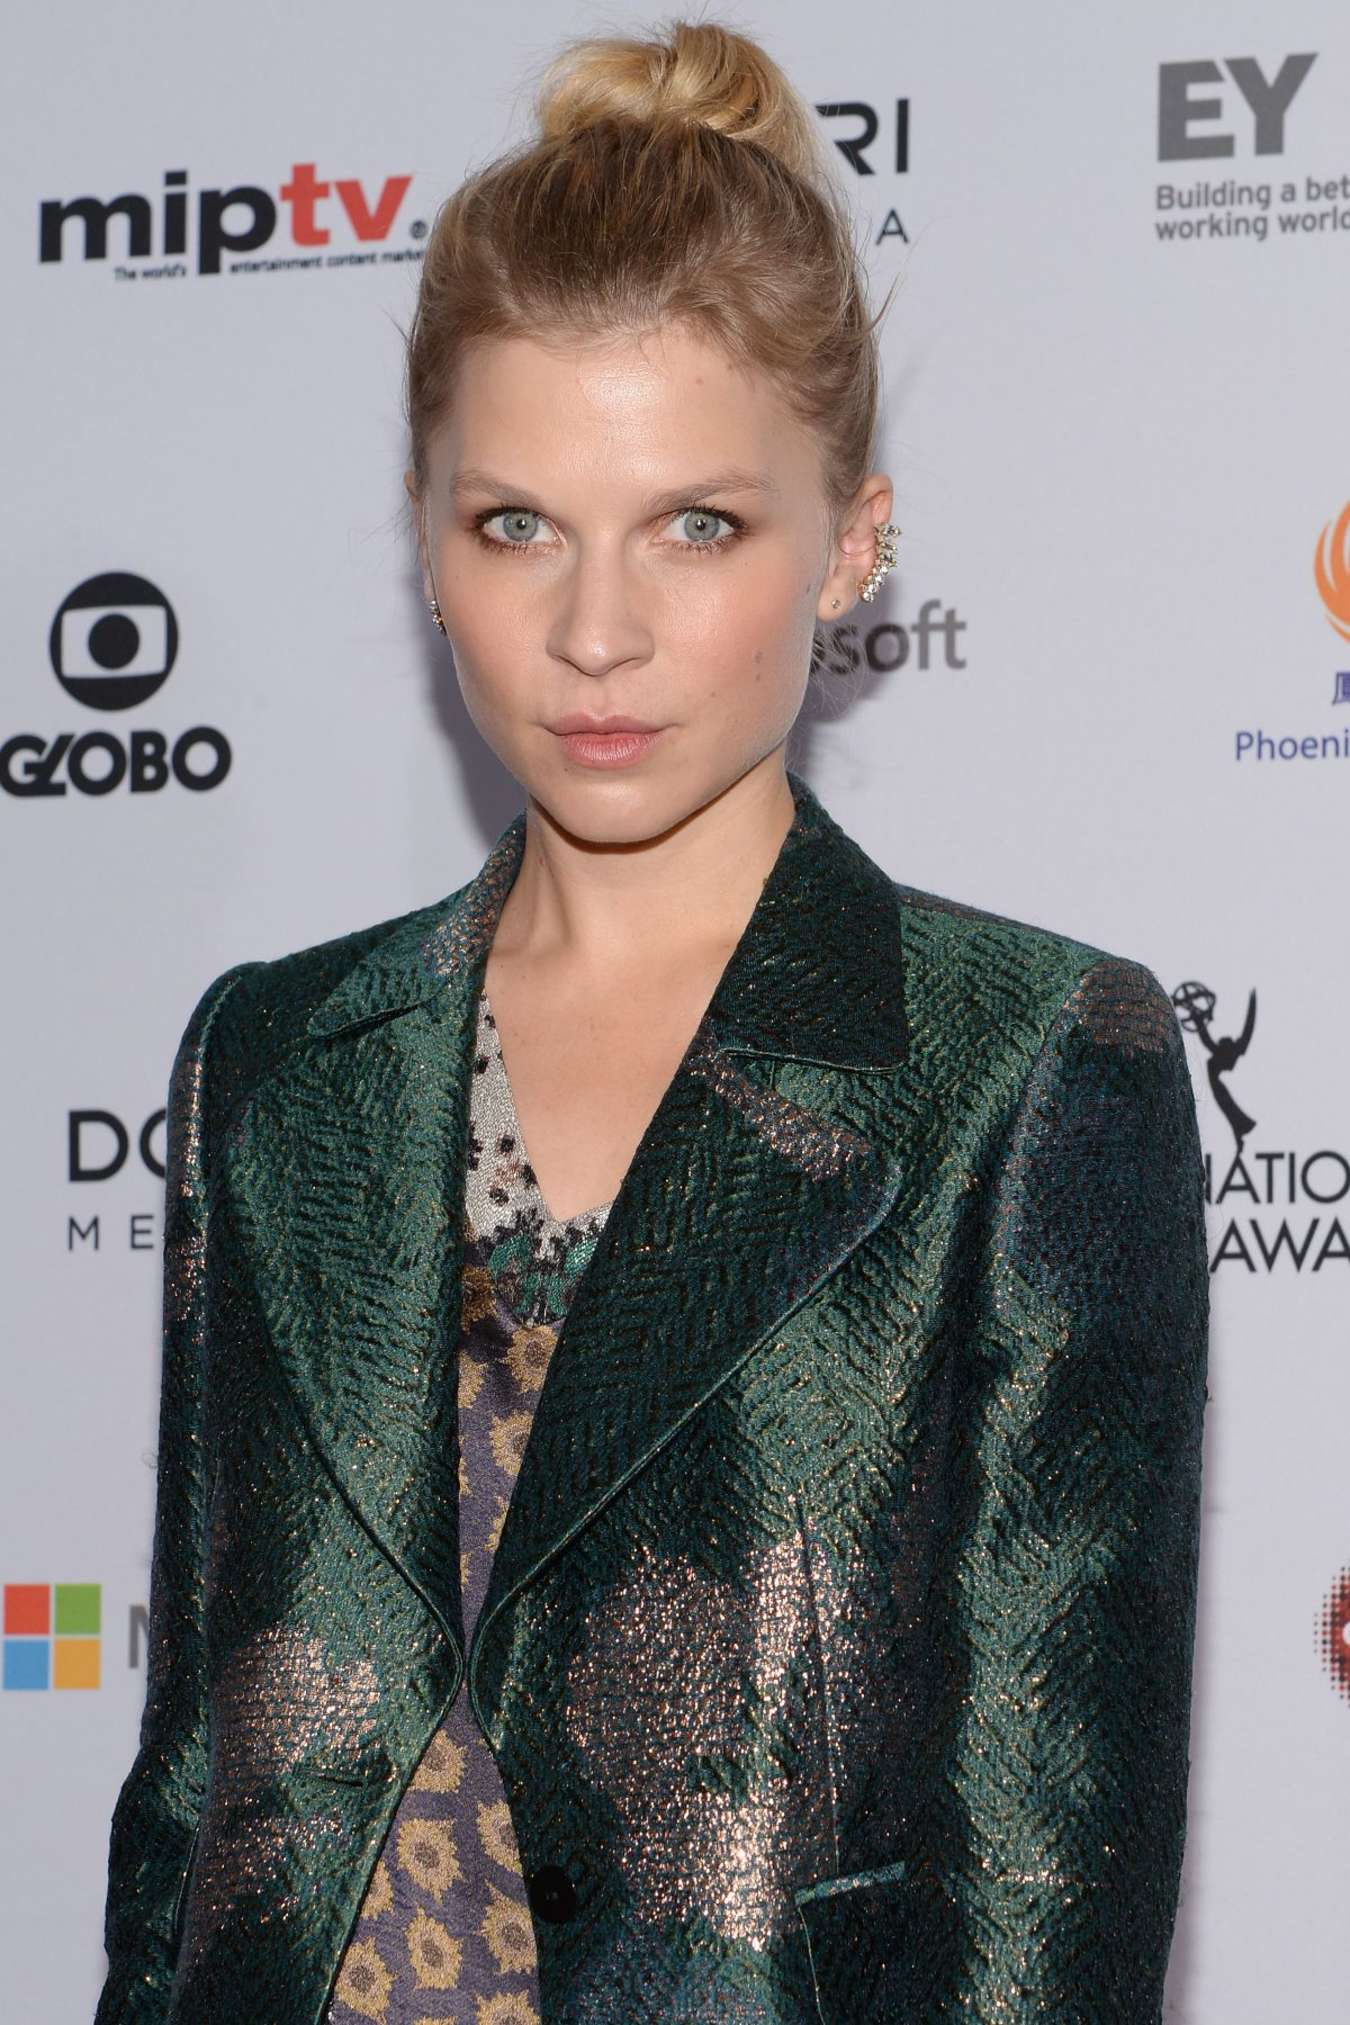 Clemence Poesy International Academy Of Television Arts Sciences Emmy Awards in New York